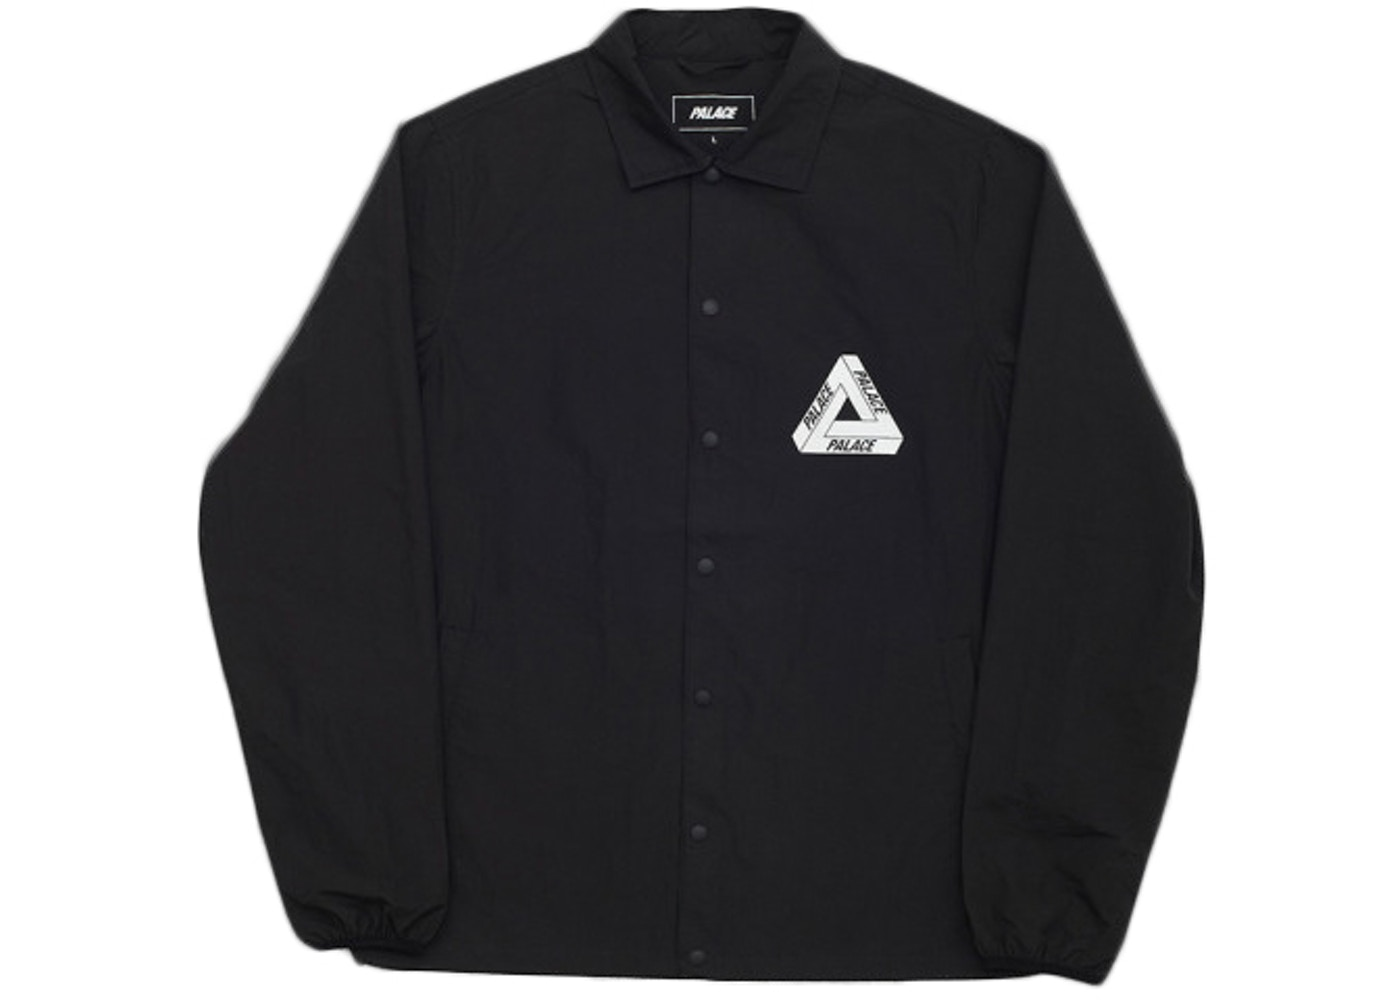 a23ffdea6 Palace Tech Coaches Jacket Black. Tech Coaches